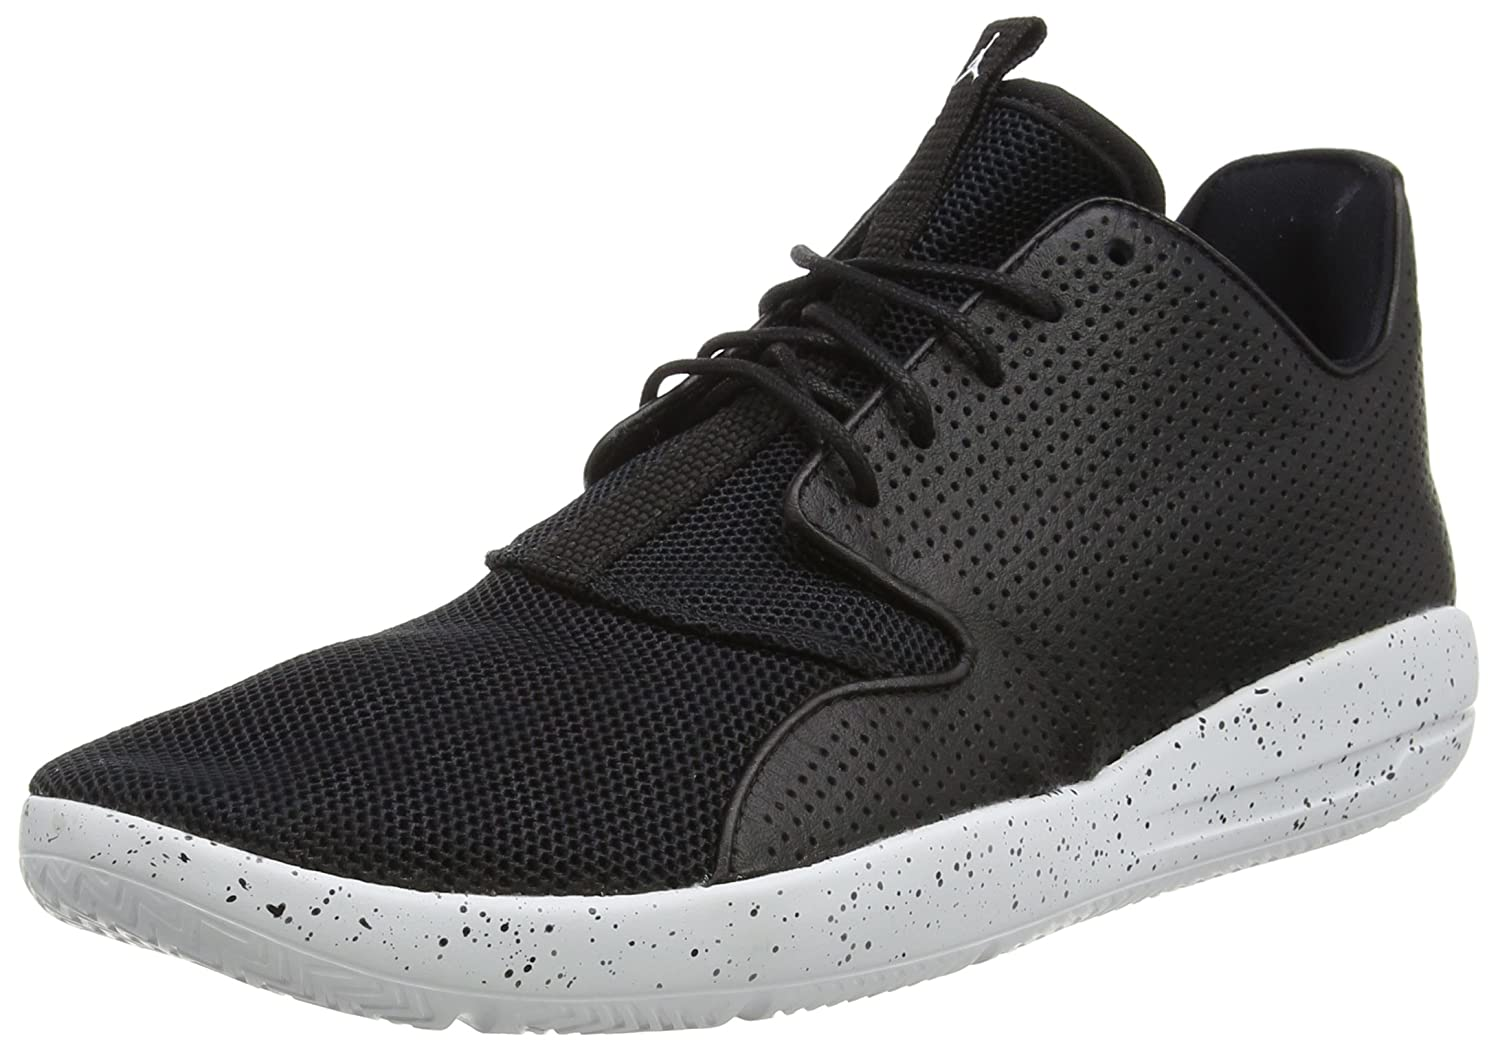 f00e6099e367cc Nike Jordan Mens Jordan Eclipse Black White Pure Platinum Running Shoe 9. 5  Men US  Buy Online at Low Prices in India - Amazon.in